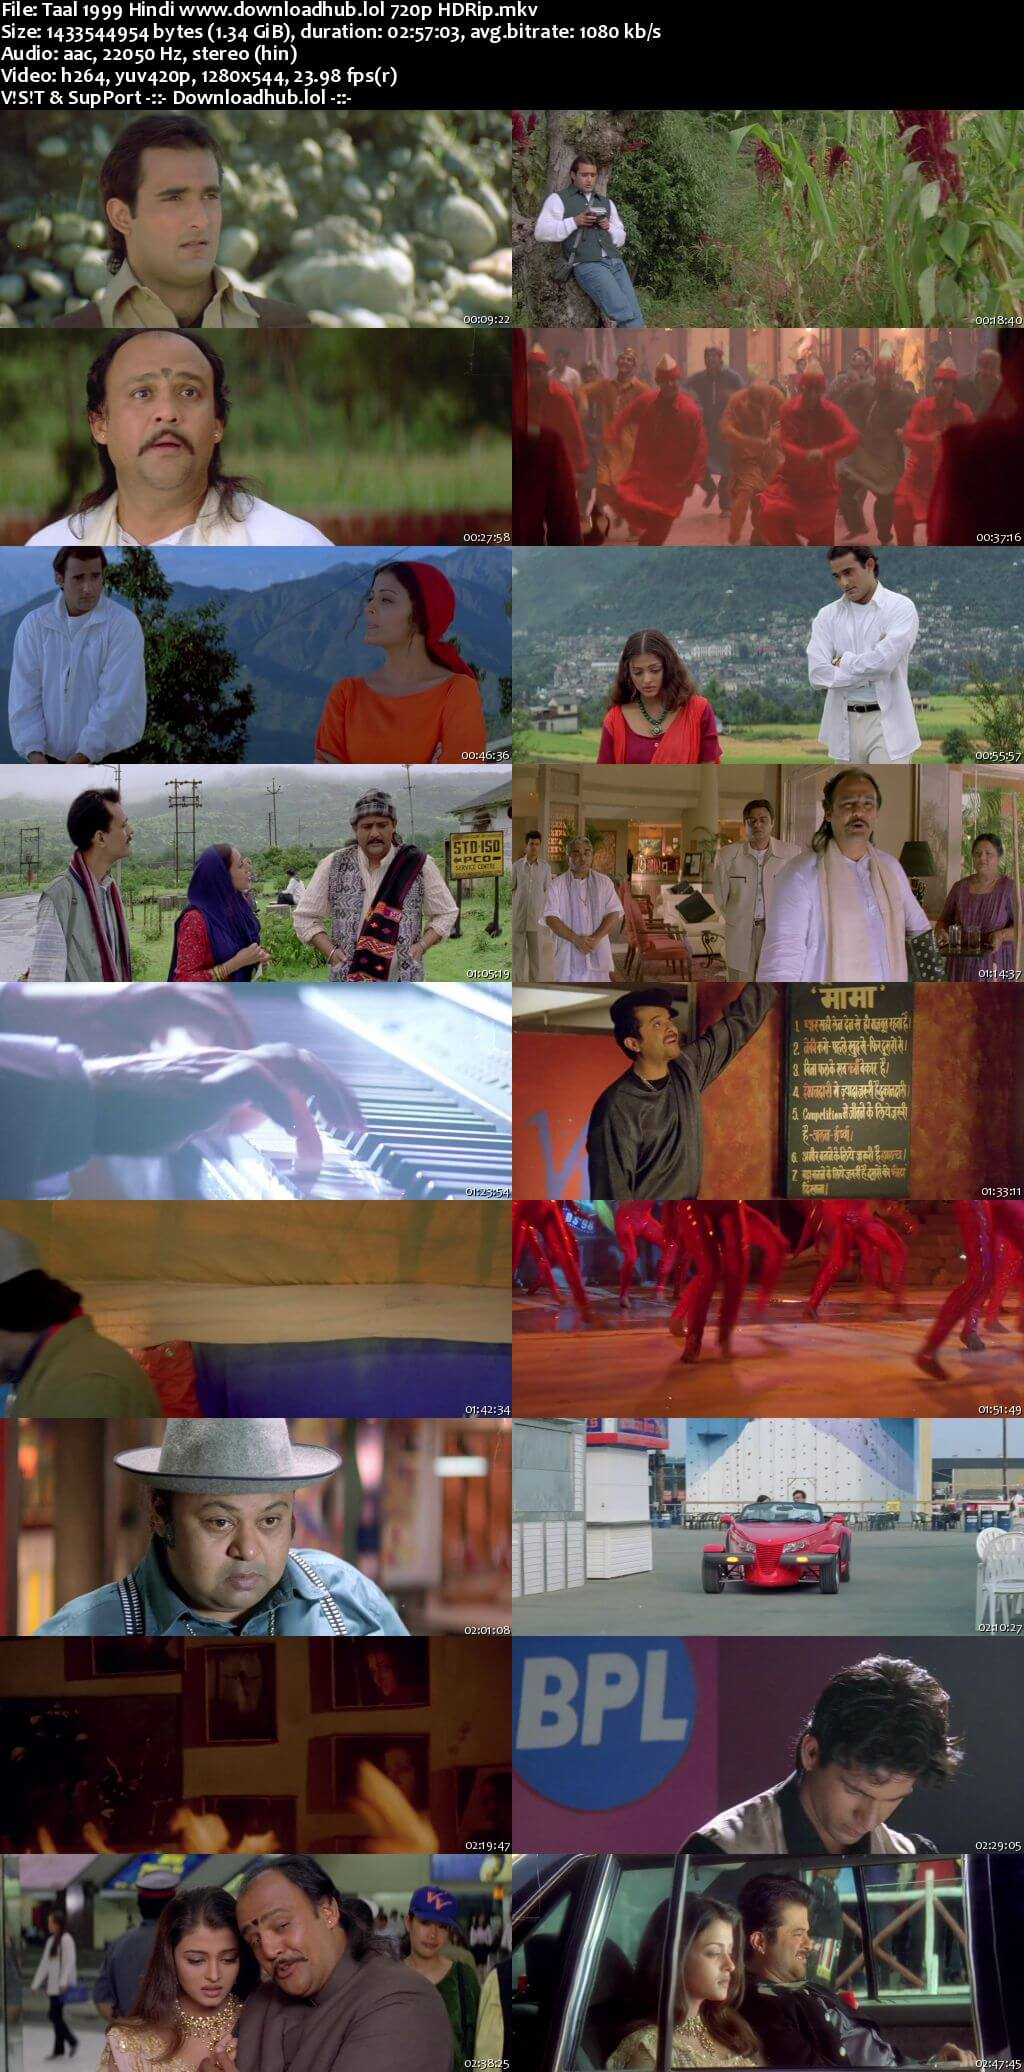 Taal 1999 Hindi 720p HDRip x264